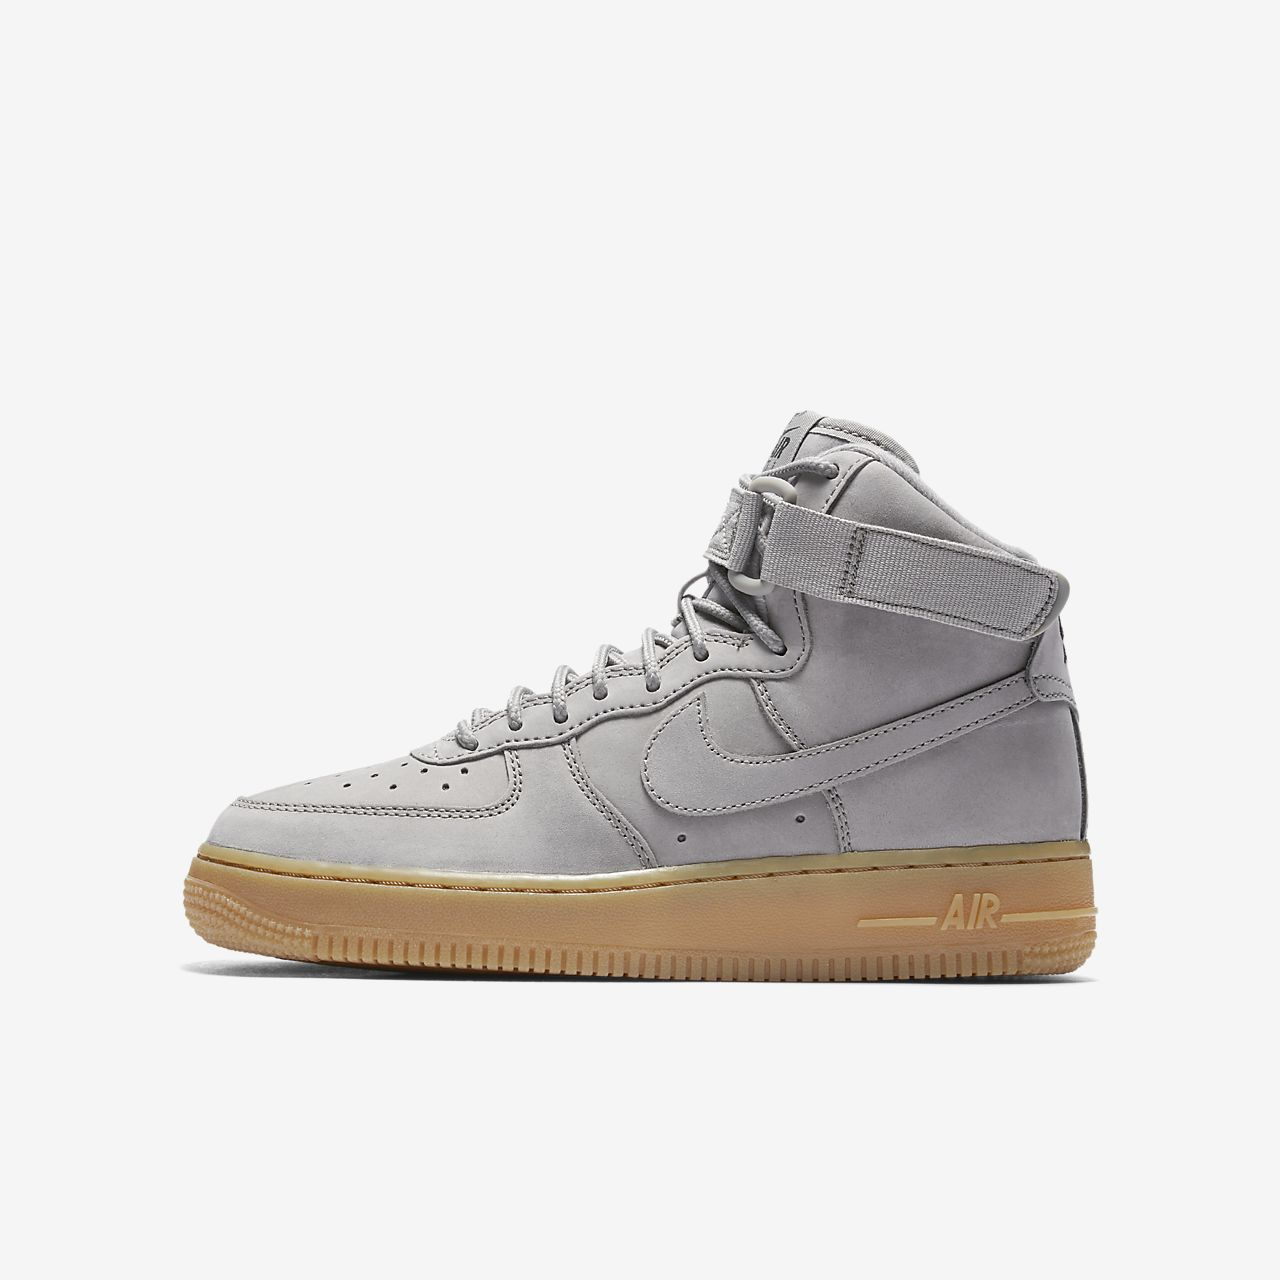 Shoes Nike Air Force Ones amp Air Jordan Sneakers